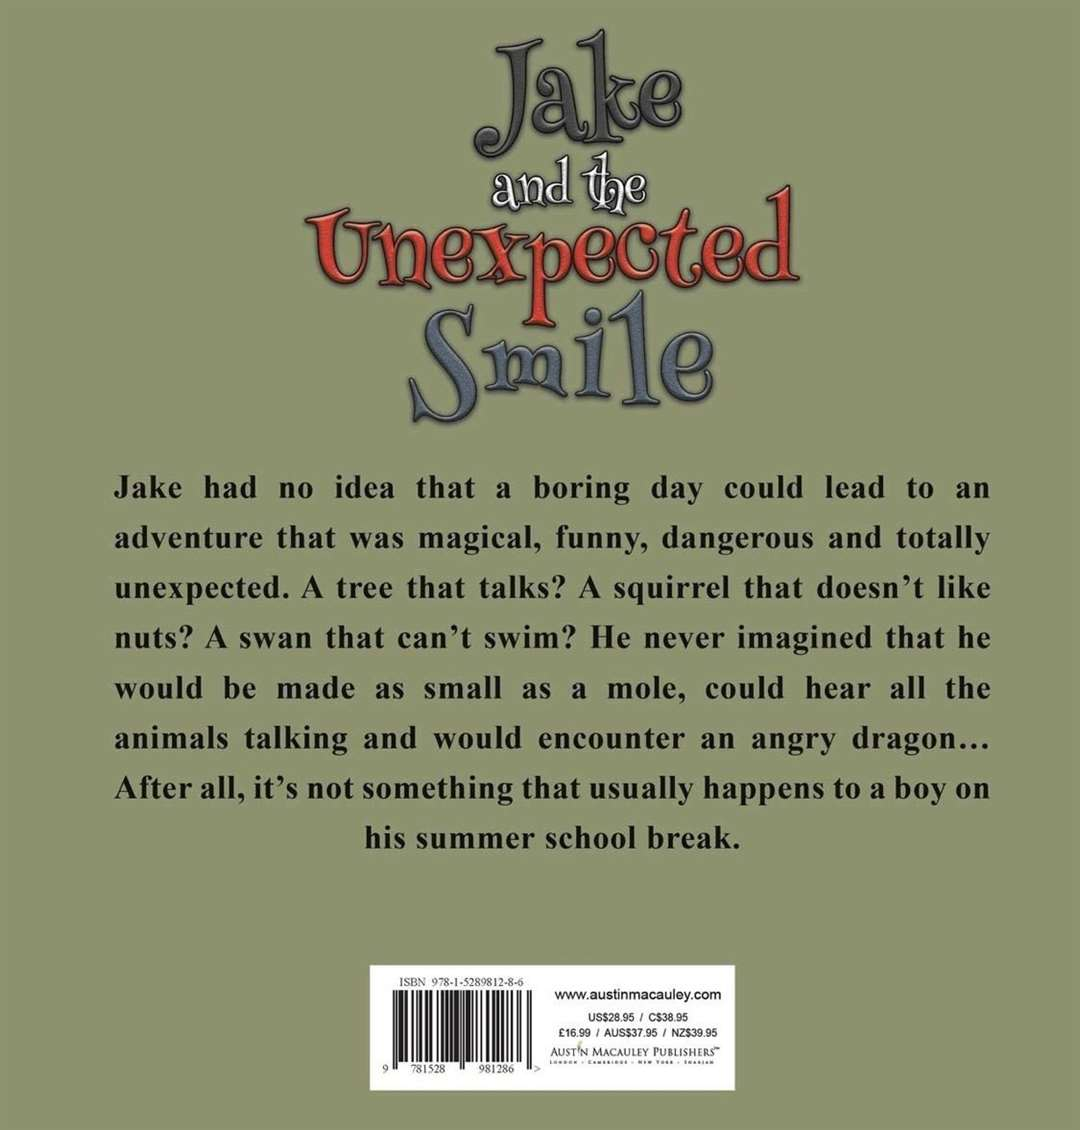 Kim Temple's book, 'Jake and the Unexpected Smile'